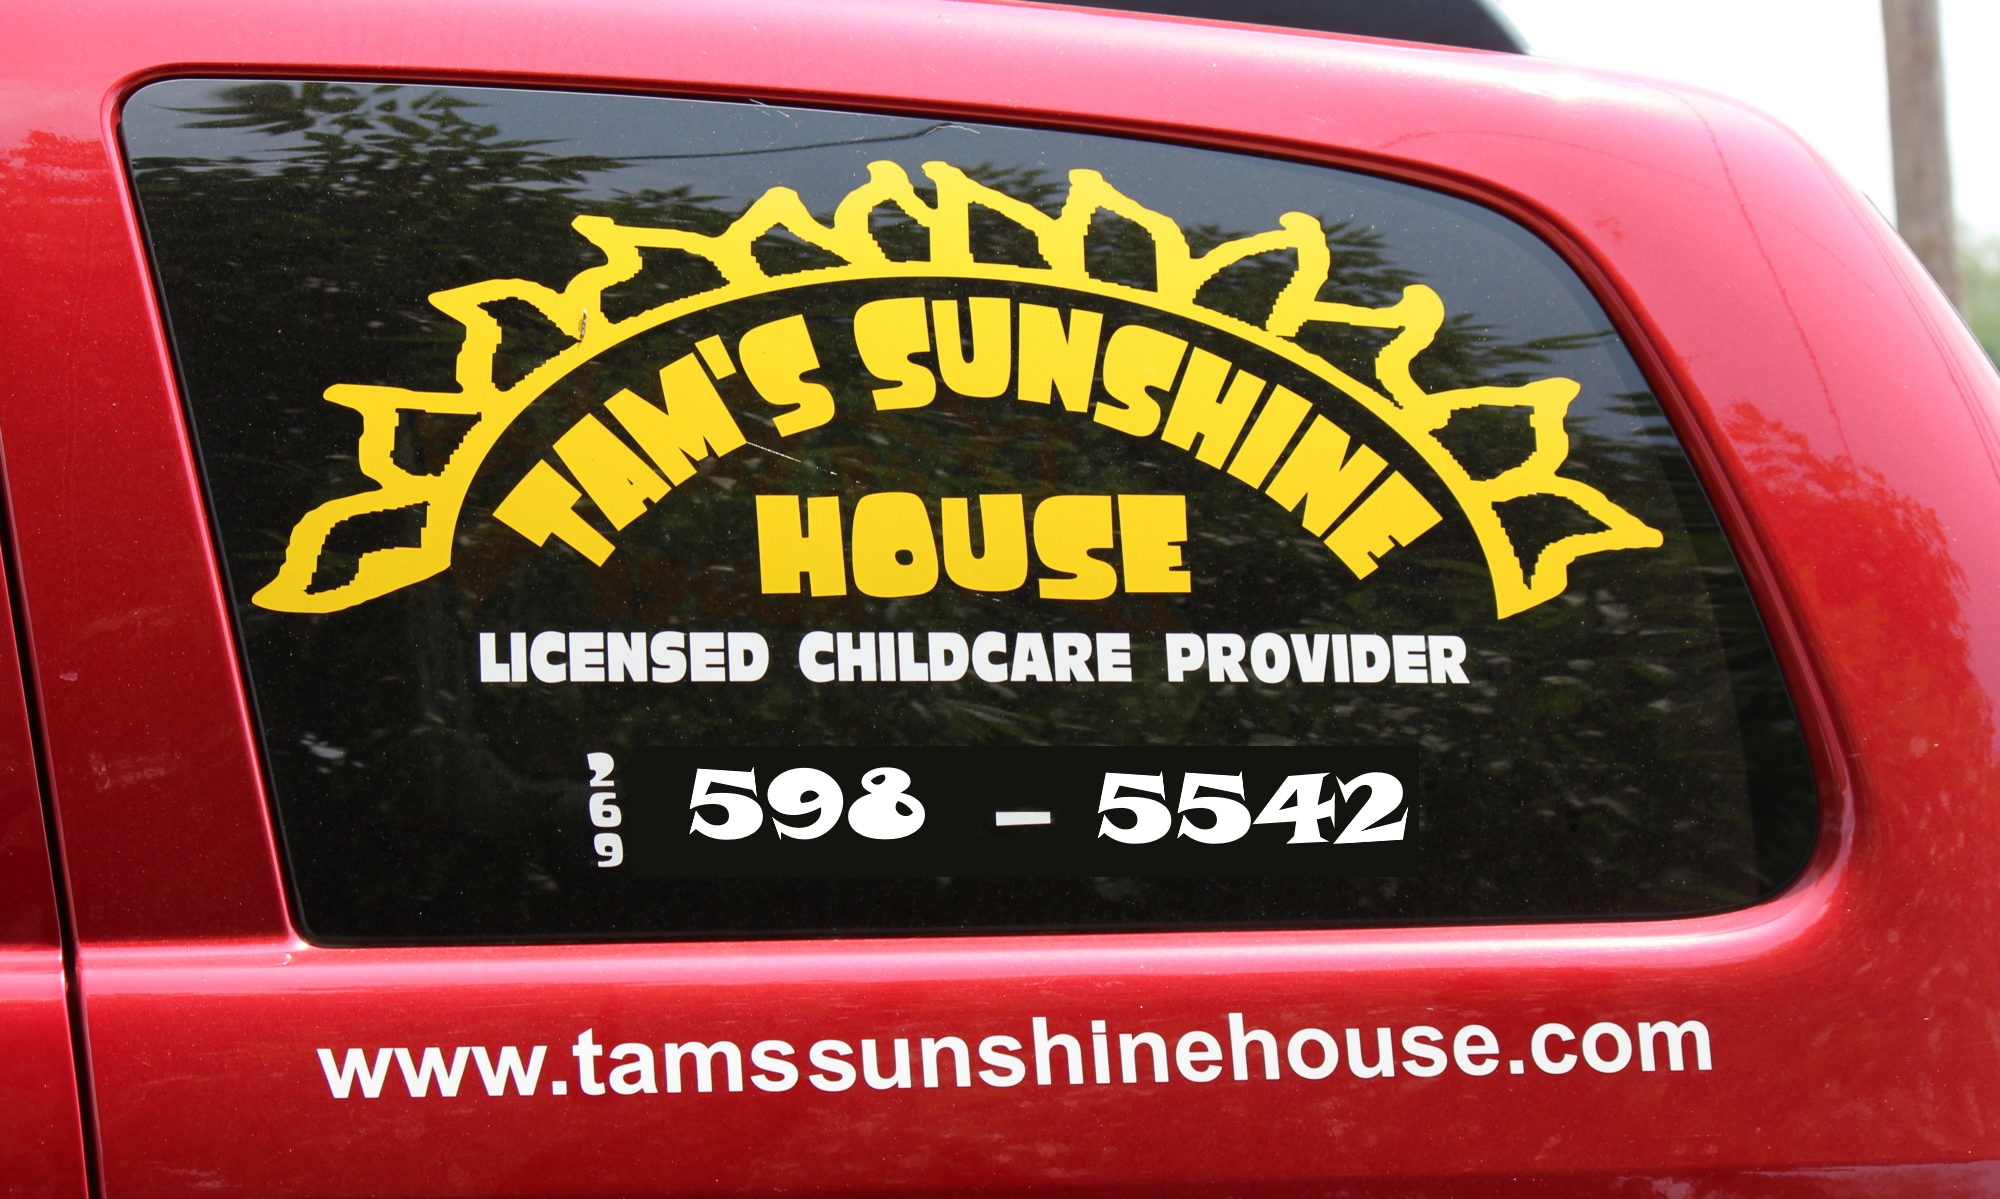 Tam's Sunshine House